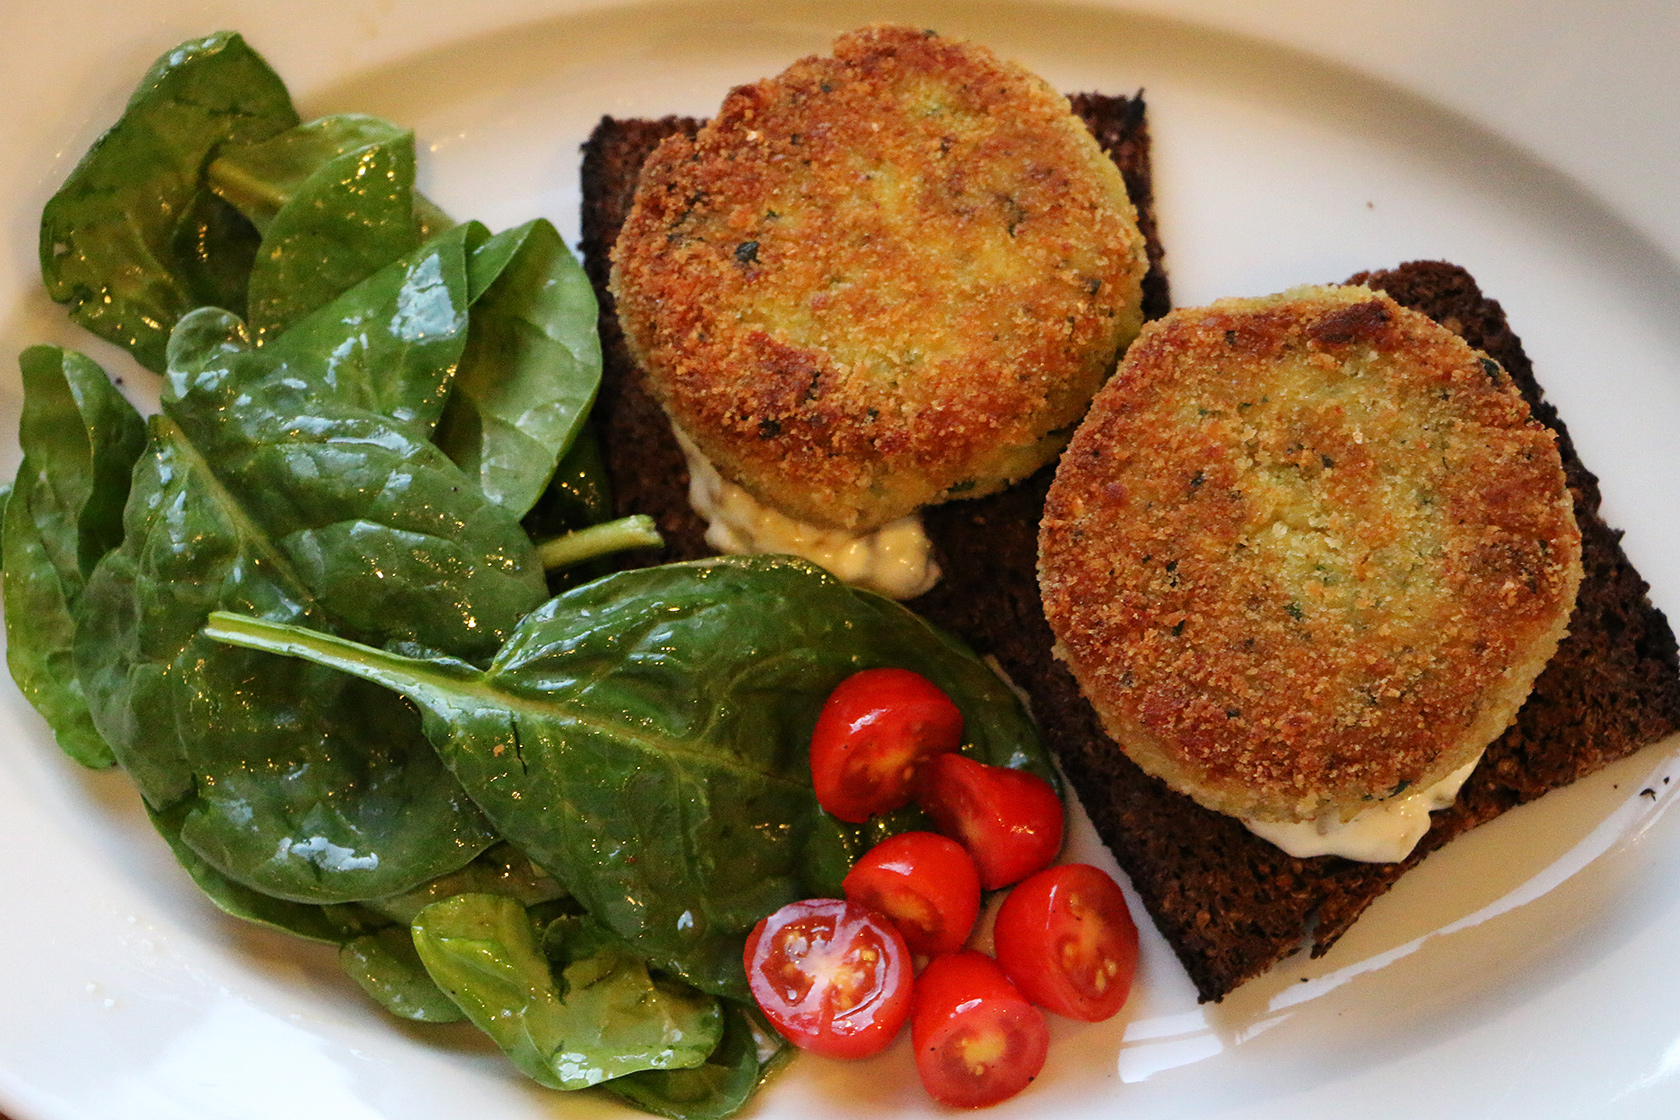 Salt Cod Fishcakes with tartar sauce, pumpernickel toast, and simple spinach salad